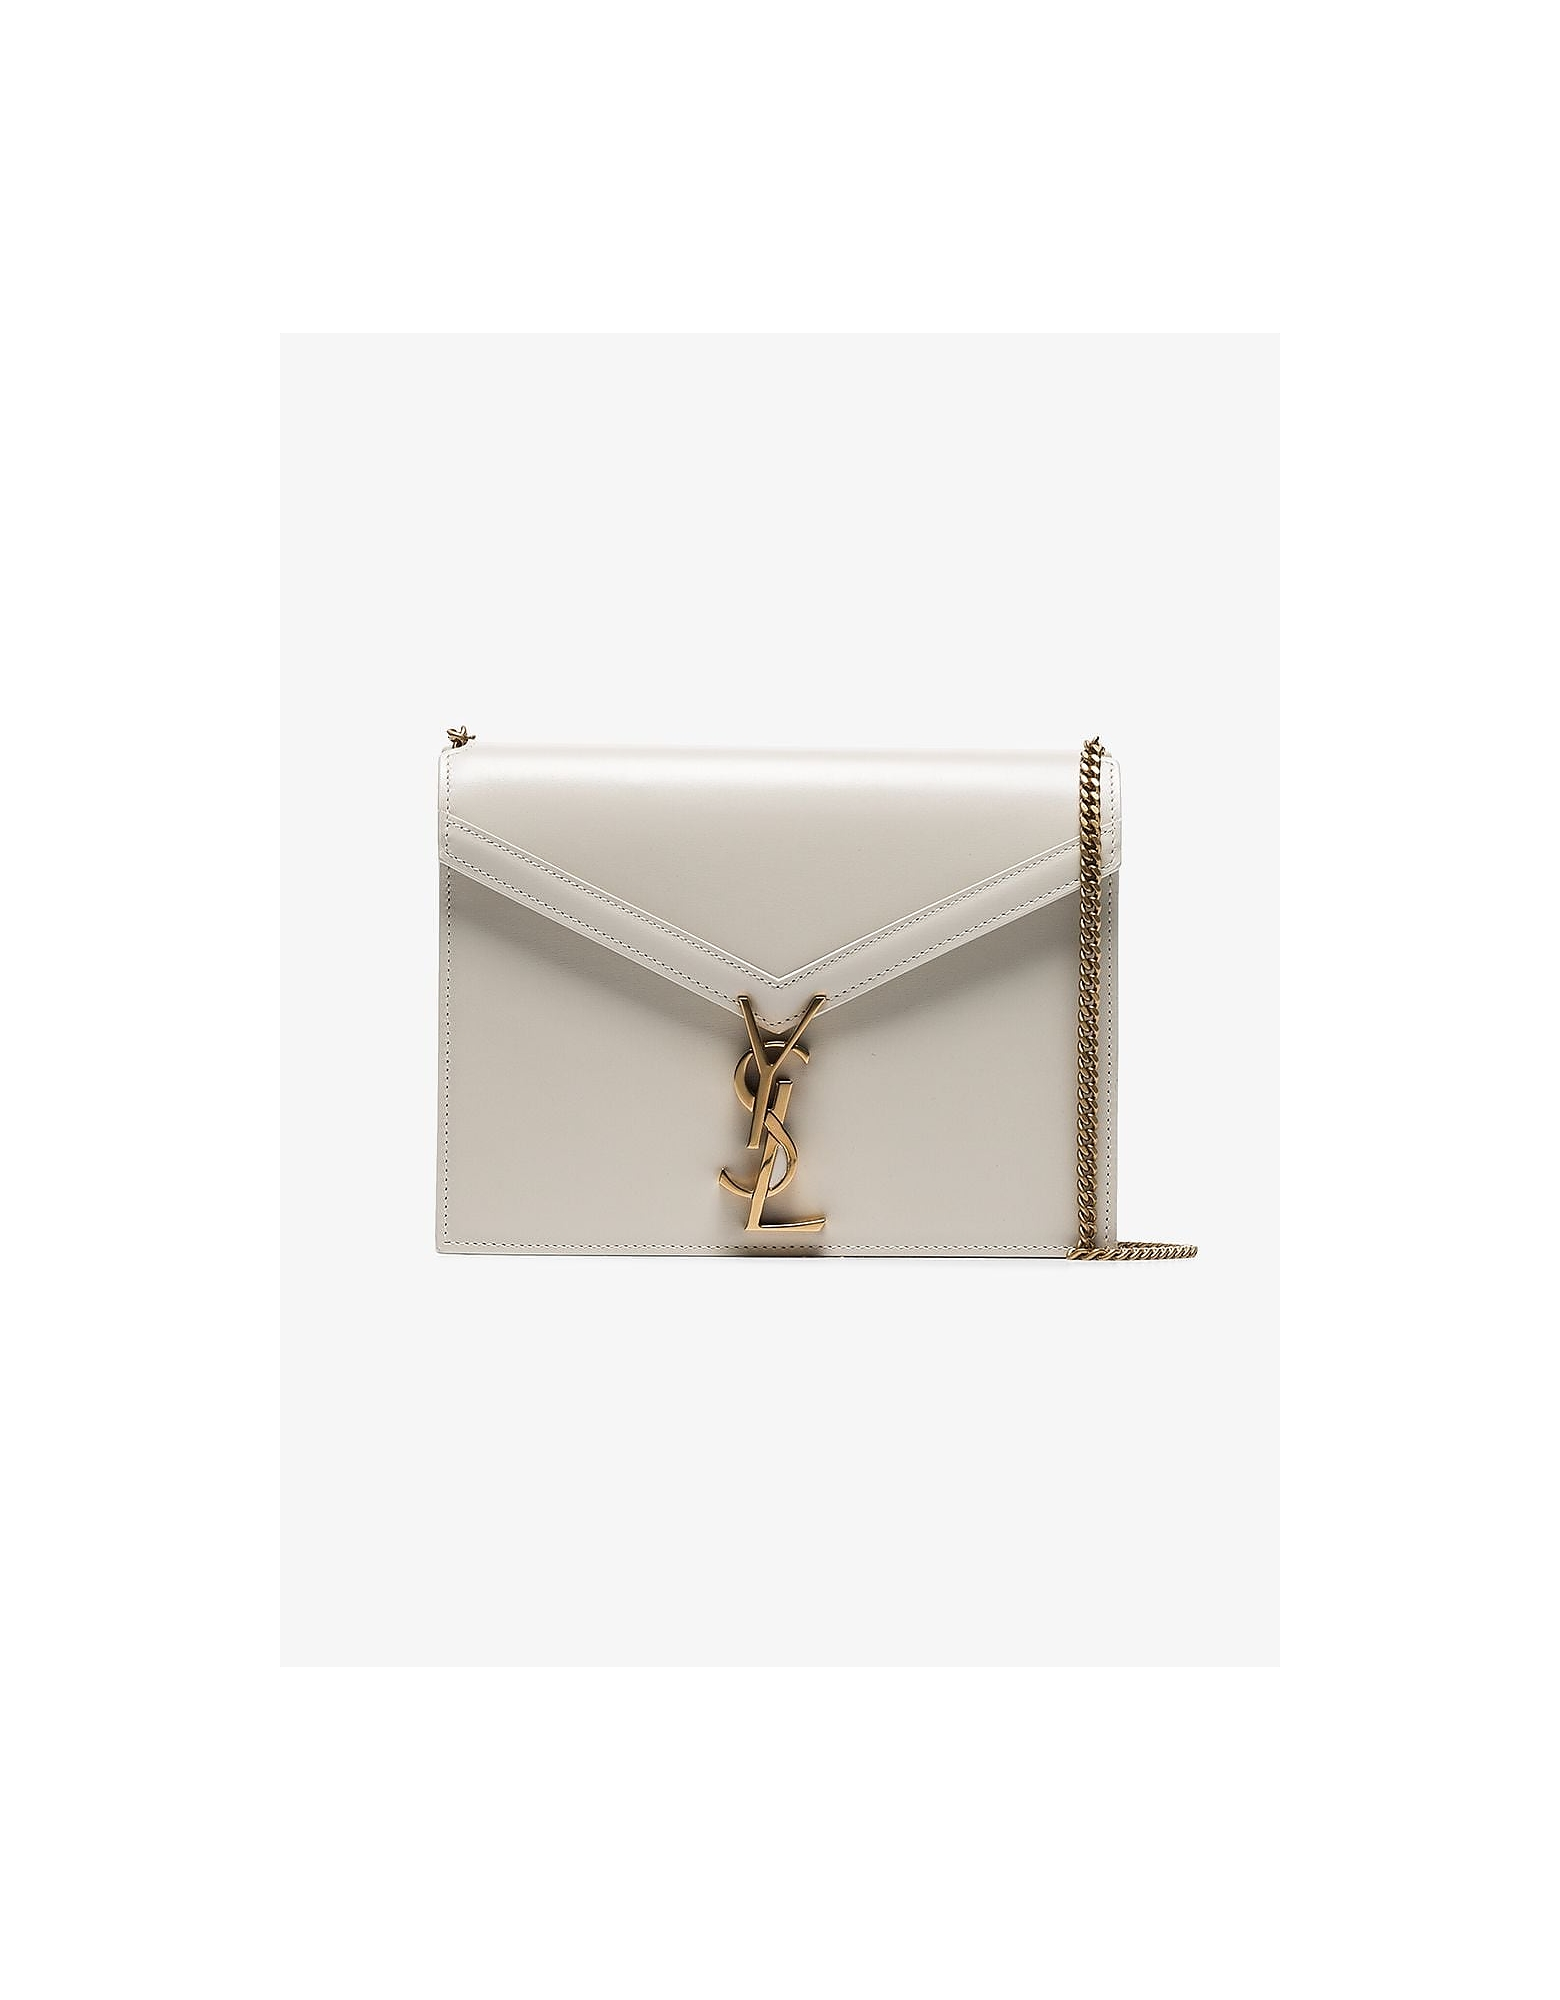 Saint Laurent Designer Handbags, Beige cassandra chain leather shoulder bag